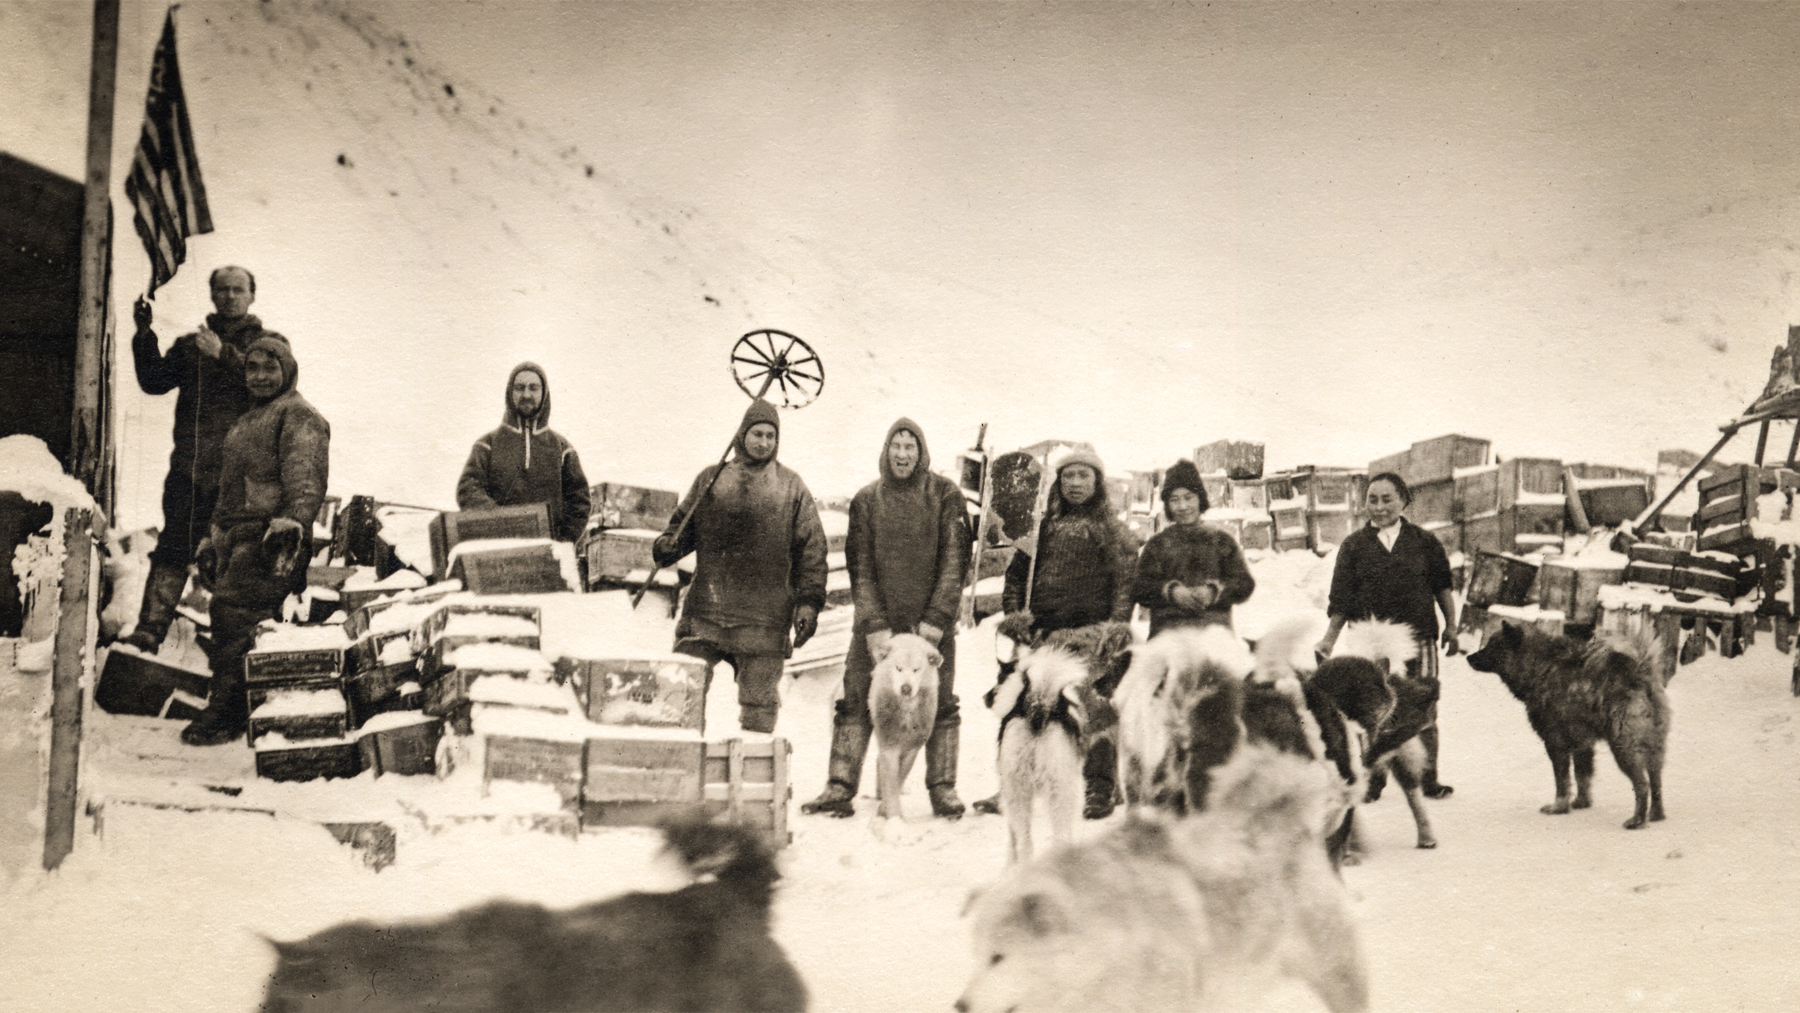 Members of the Crocker expedition with dogs